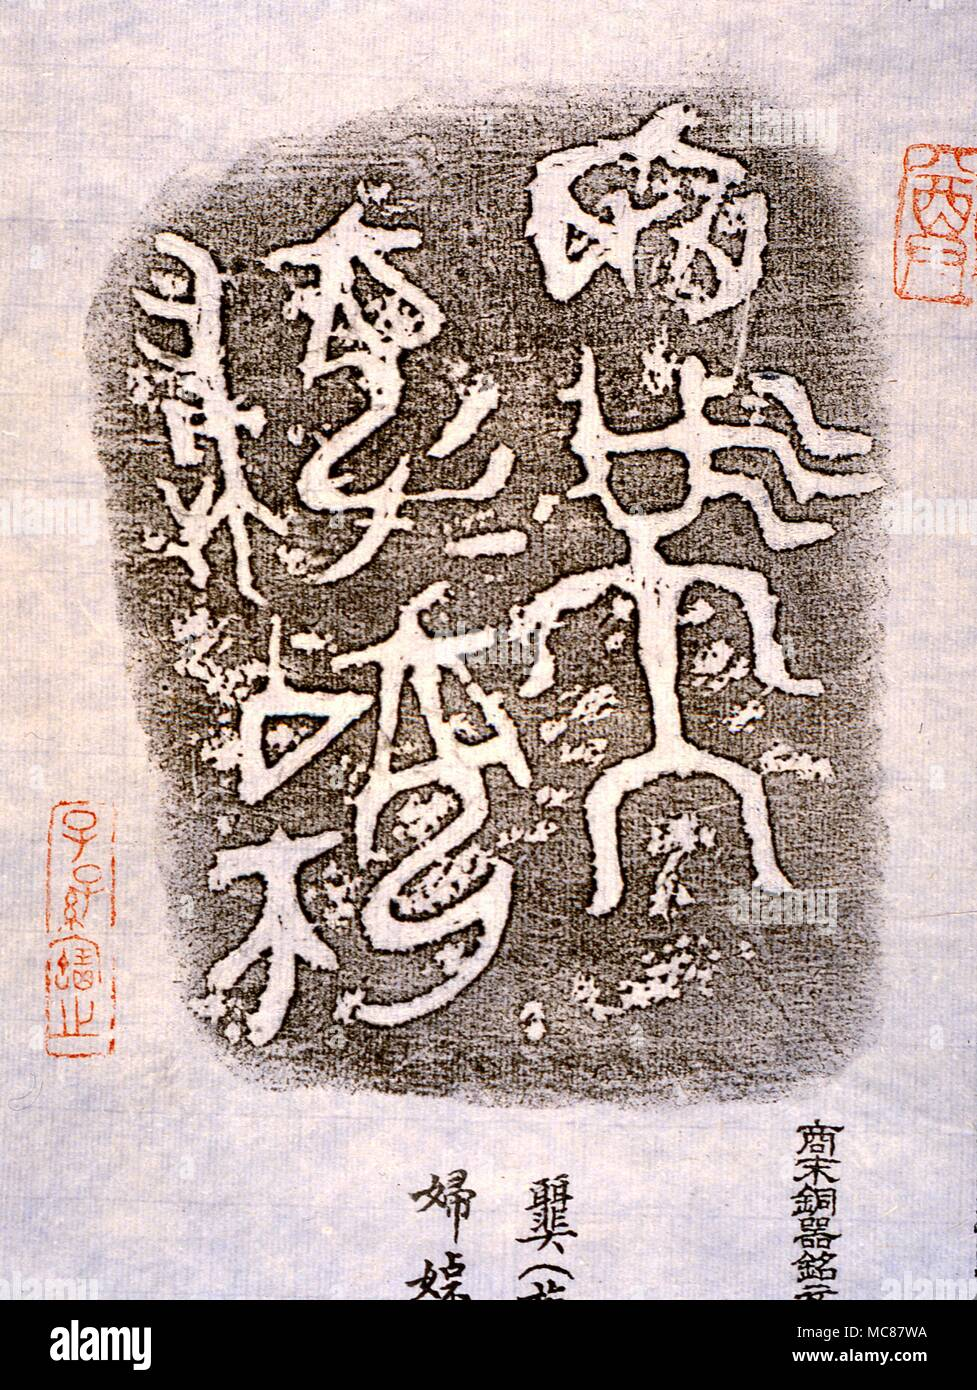 Chinese Mythology Frottage taken from early bronze utensil revealing pictographs which were later developed to form certain of the Chinese characters. Hong Kong - Stock Image